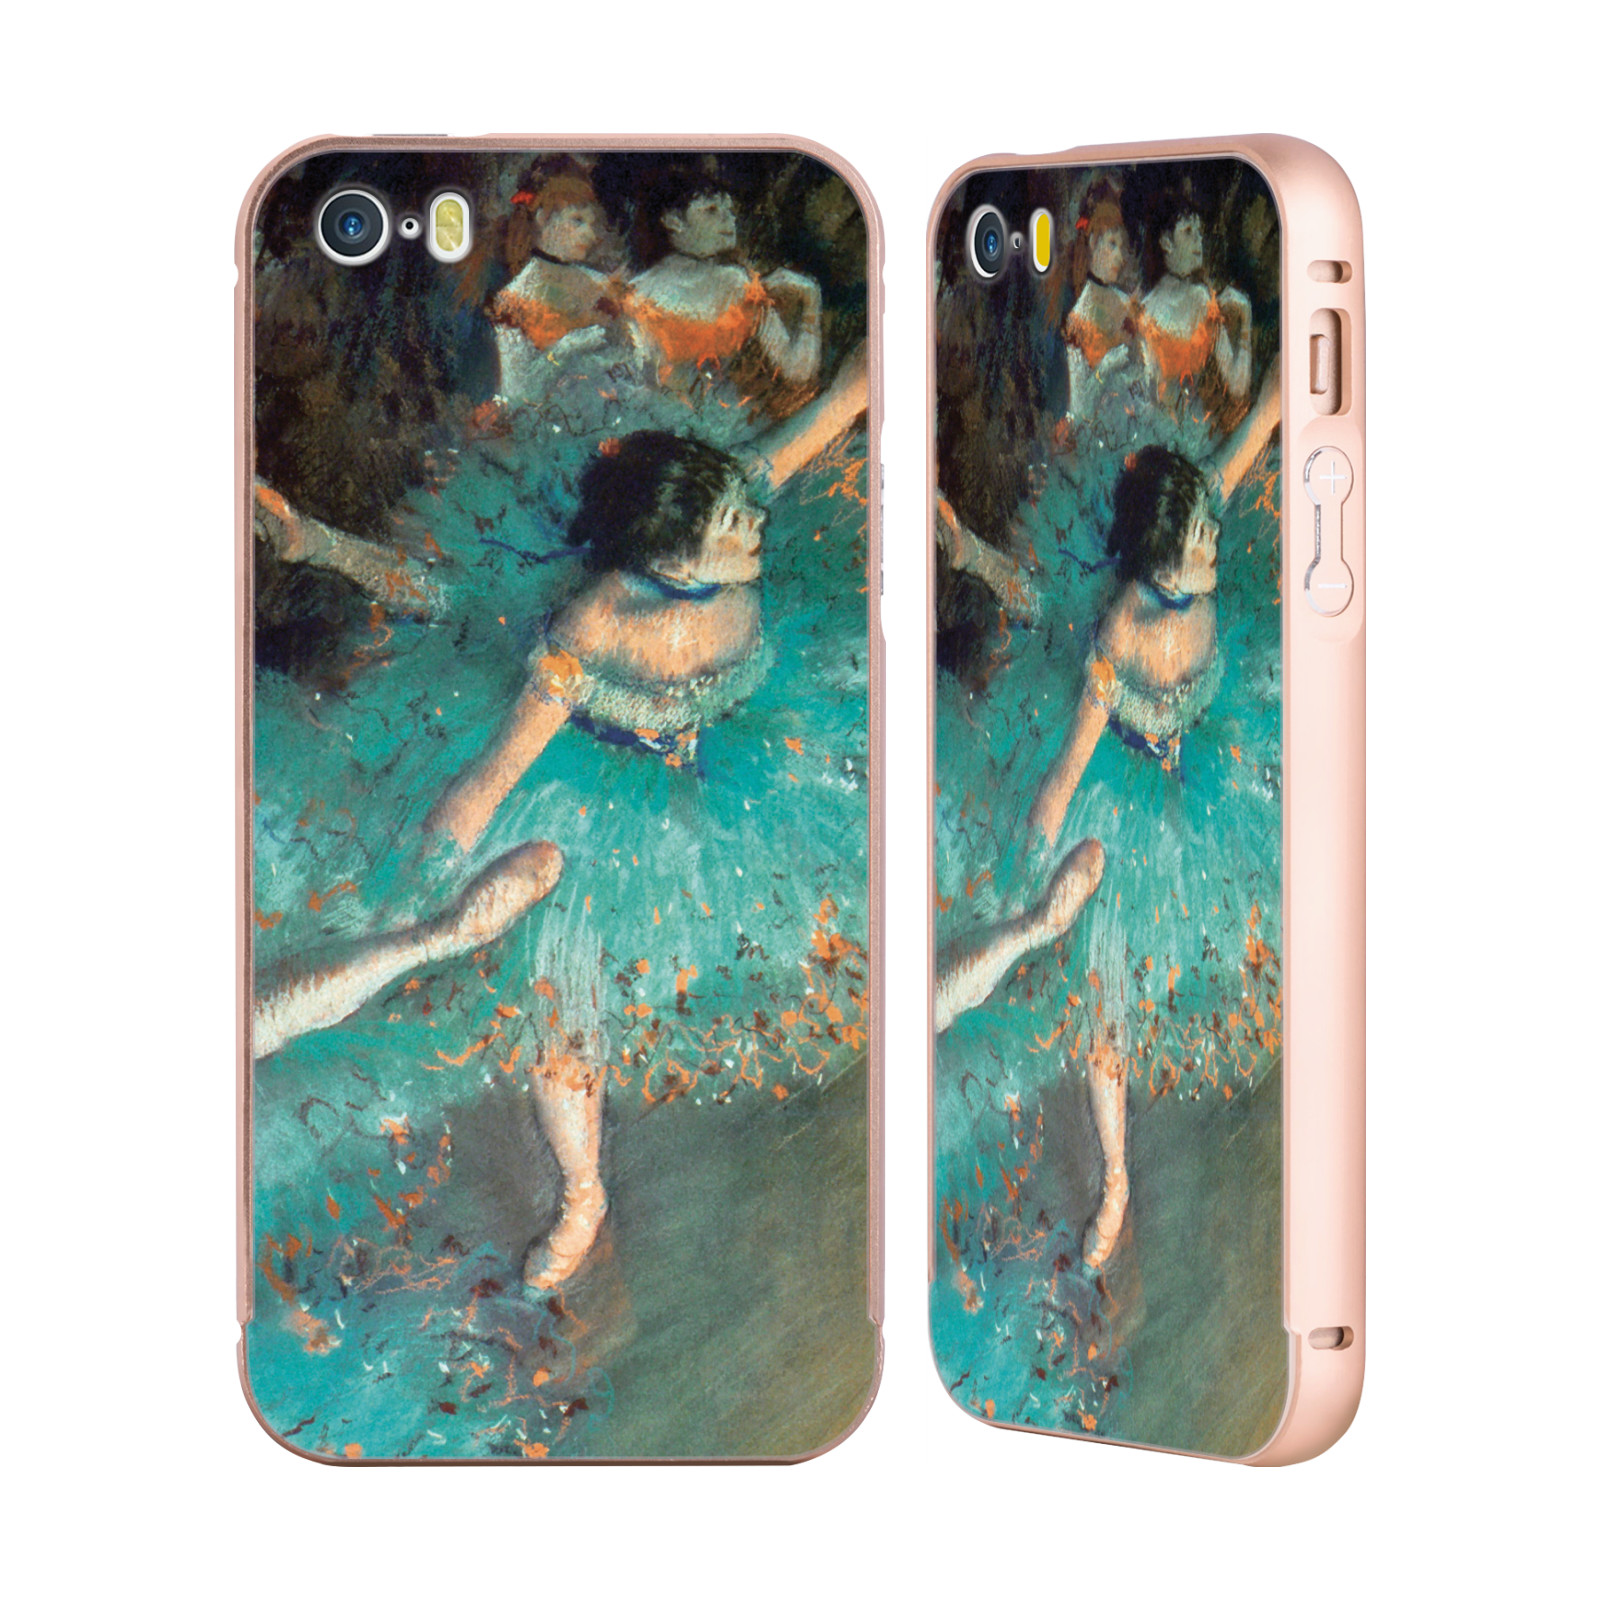 OFFICIAL-MASTERS-COLLECTION-PAINTINGS-2-GOLD-SLIDER-CASE-FOR-APPLE-iPHONE-PHONES